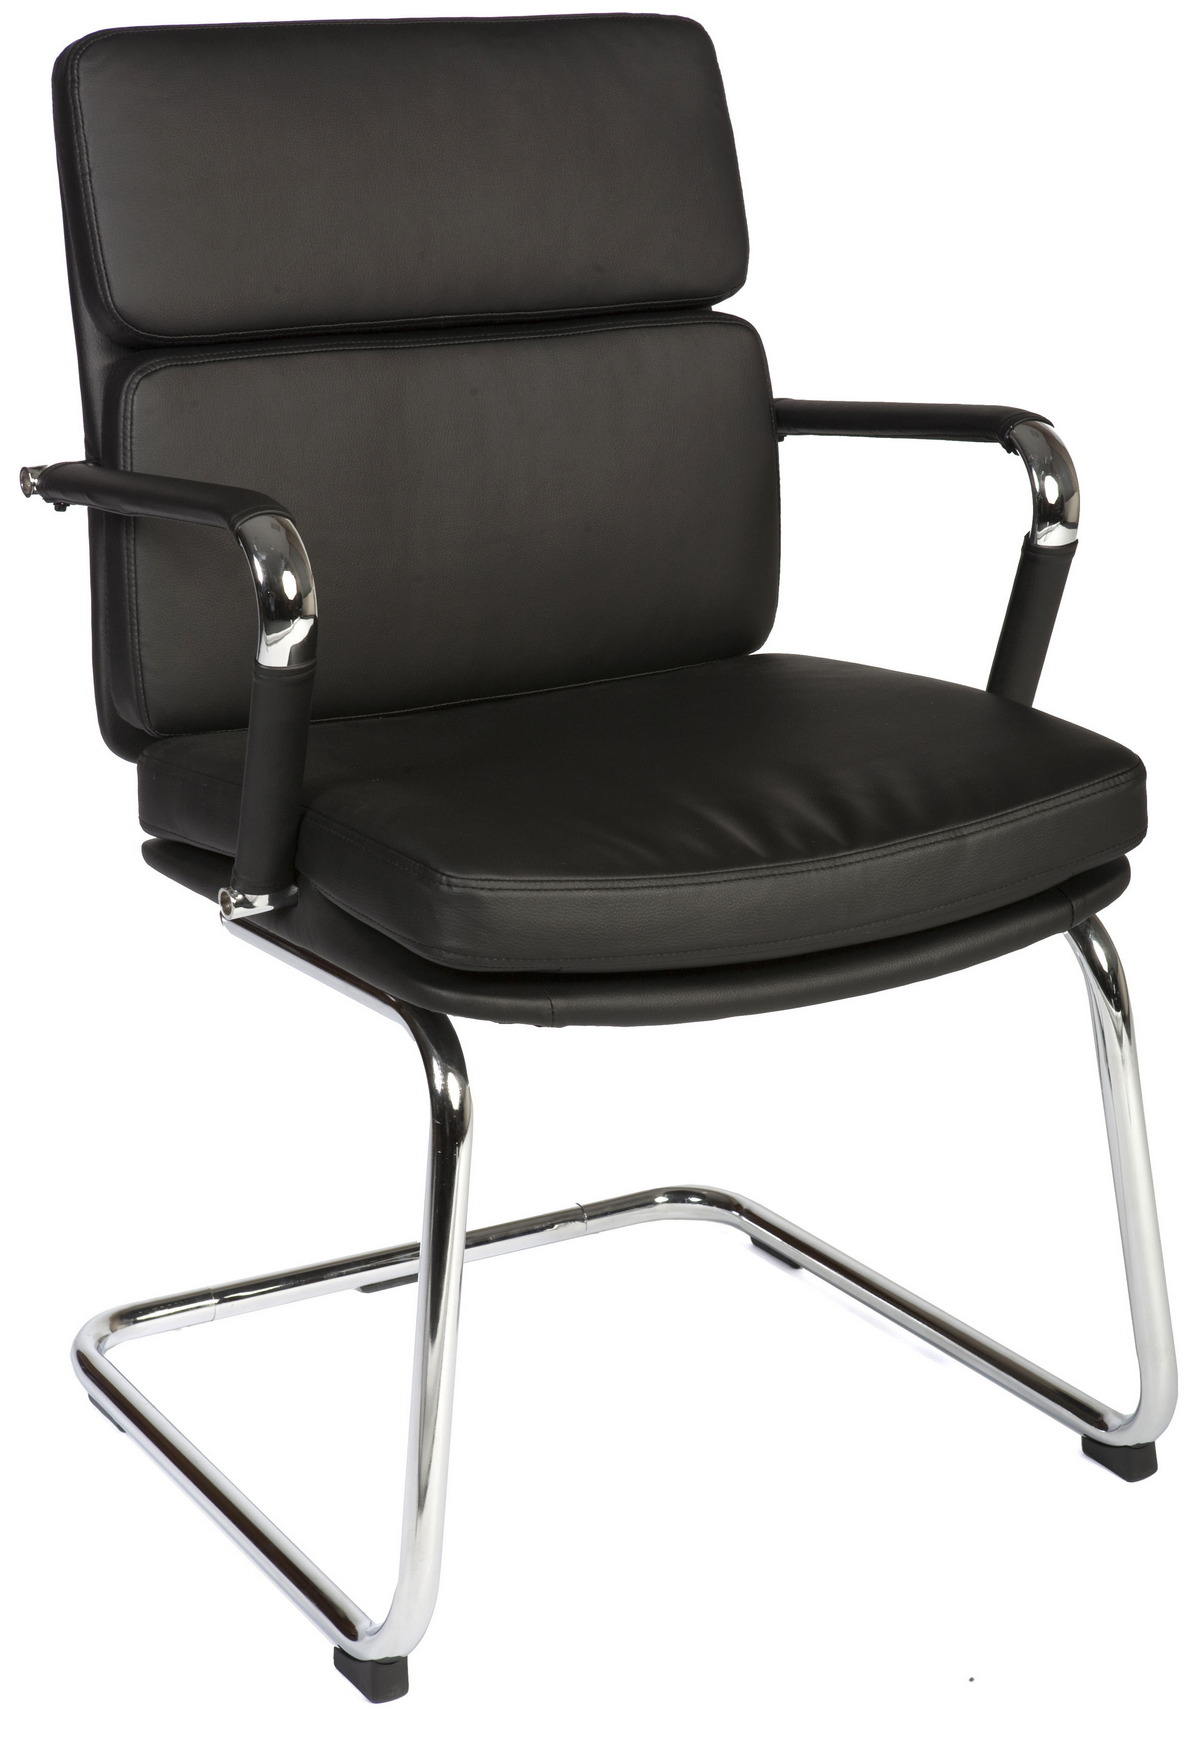 Budget eames style padded faux leather cantilever chair Budget furniture